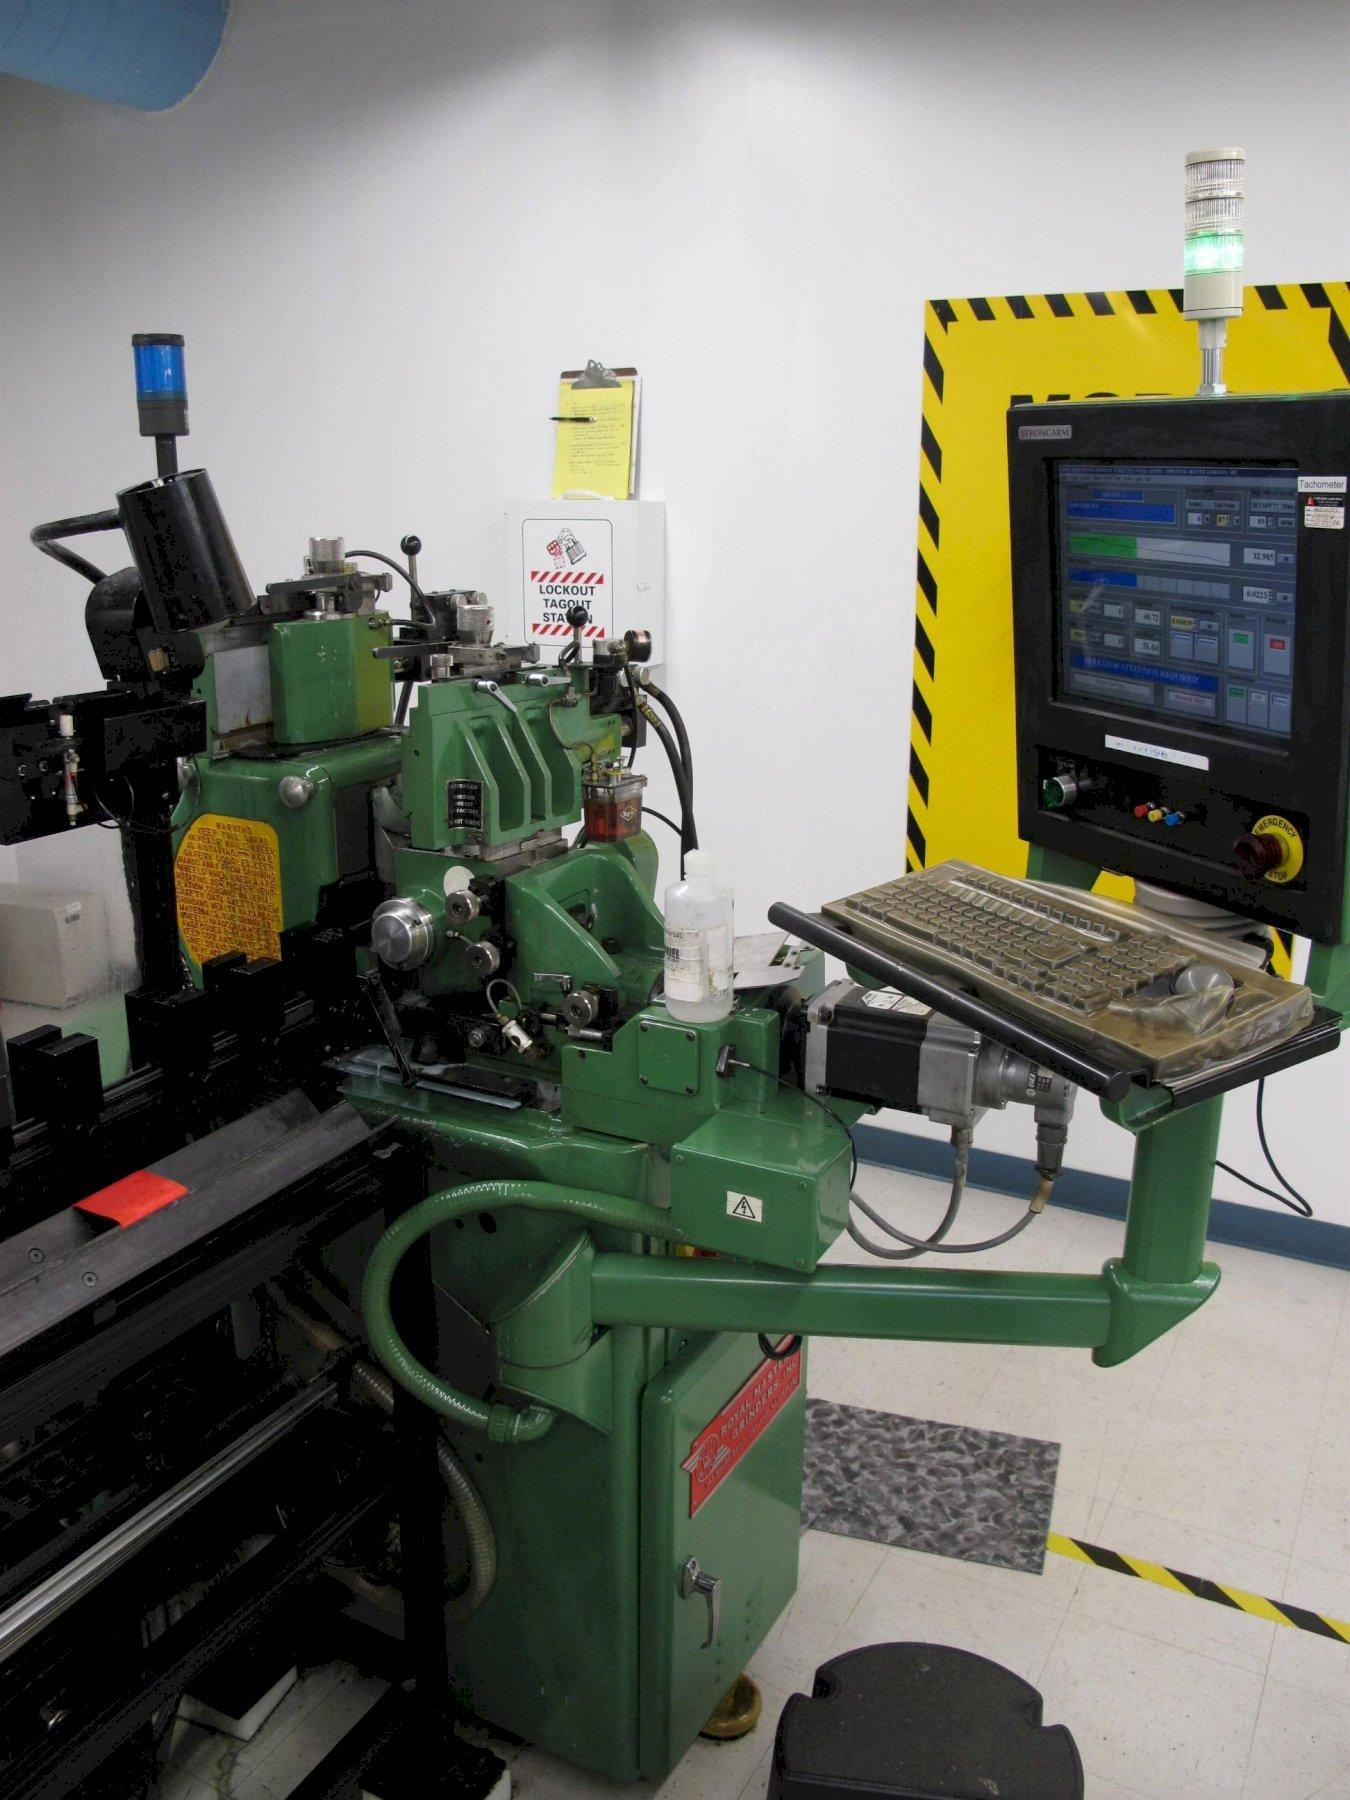 """Royal Master Generation 5.1 CNC Guidewire Profile Centerless Grinder, Grinding Wire from: .0001""""to .250"""", up to 17', with Scale Feedback to: .000004"""", Touch Screen CNC Windows Based Control (Upgraded), 7.5 HP."""